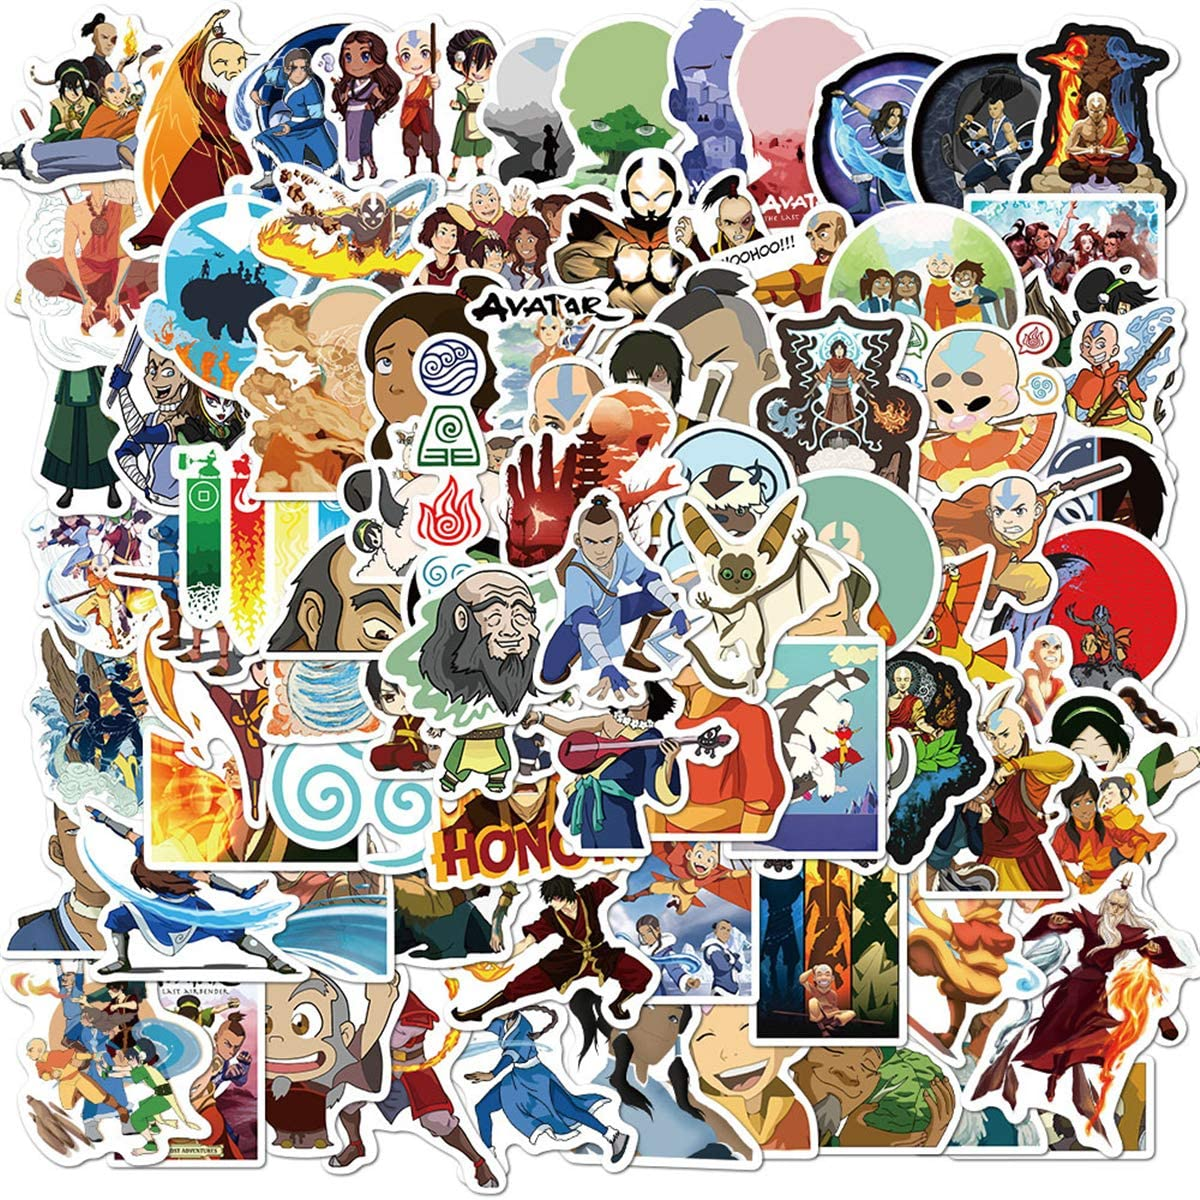 100 PCS Avatar Stickers, Cartoon Anime Movie Sticker, Aang, Katara,Sokka Vinyl Decals, for Laptop, Water Bottle, Car, Skateboard, Guitar, Helmet (Avatar100)